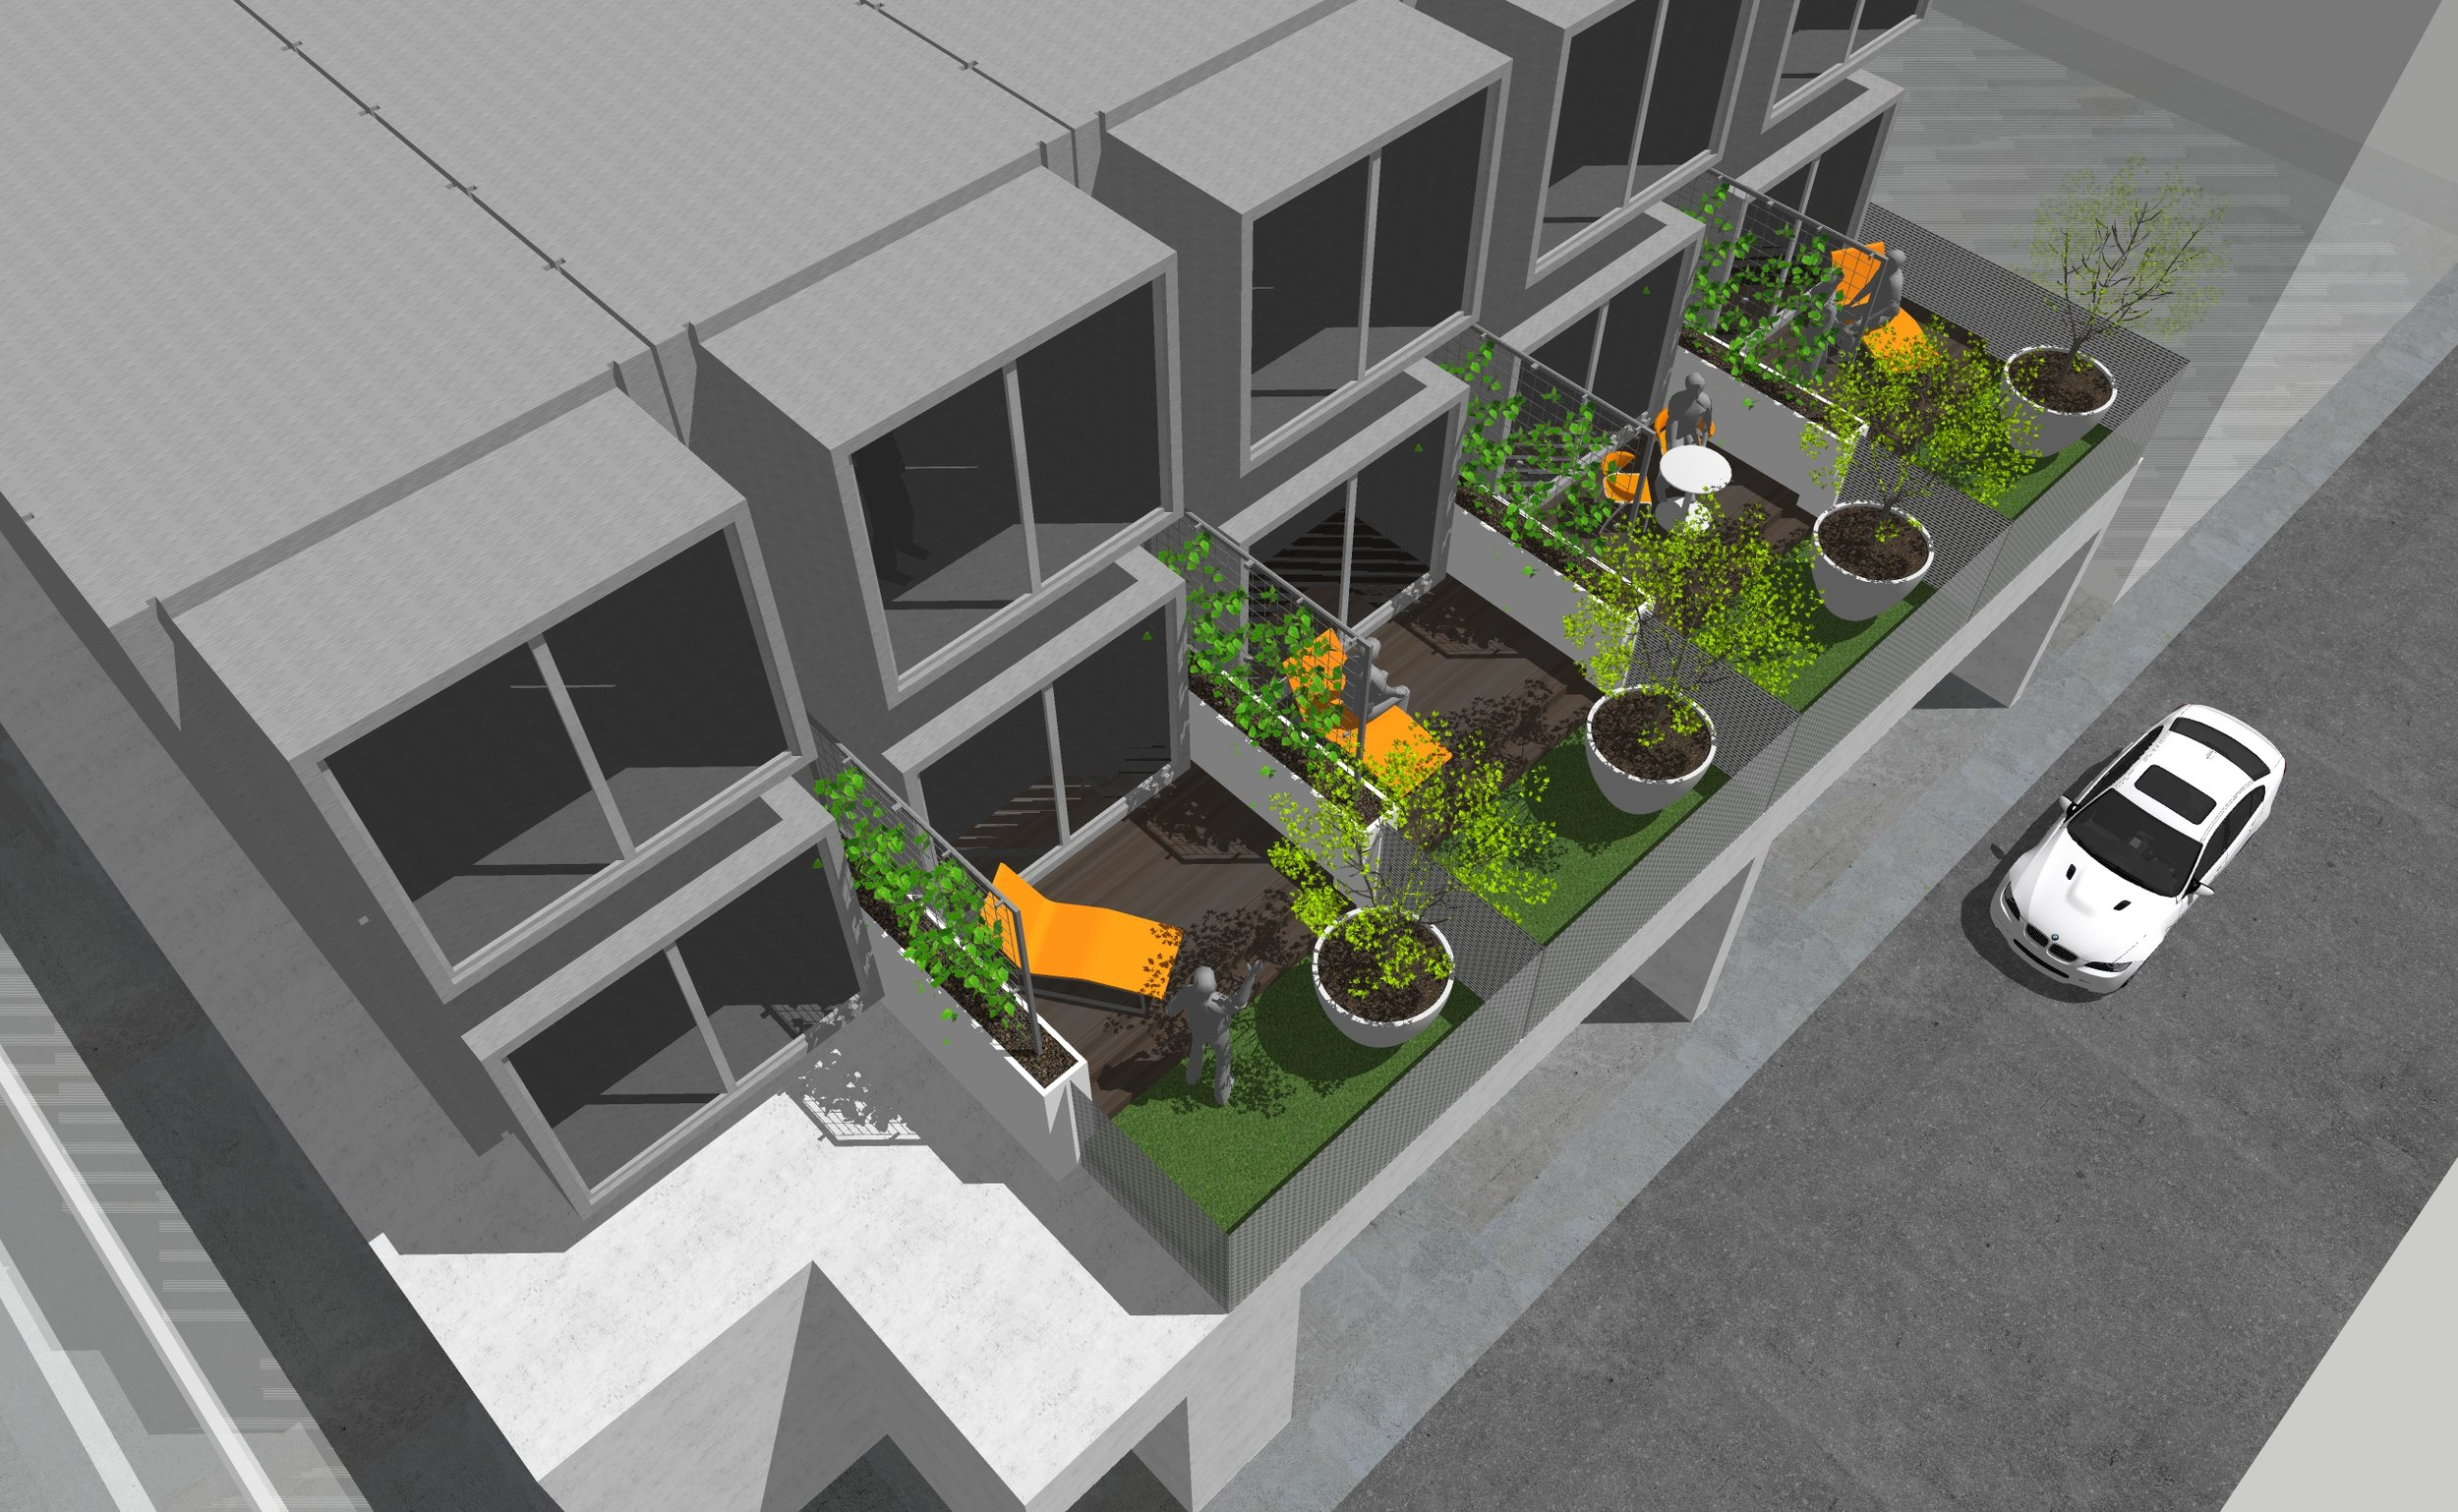 exploring the many exterior amenity spaces being designed at kasita on tennyson. west facing views with 200SF private garden and deck.